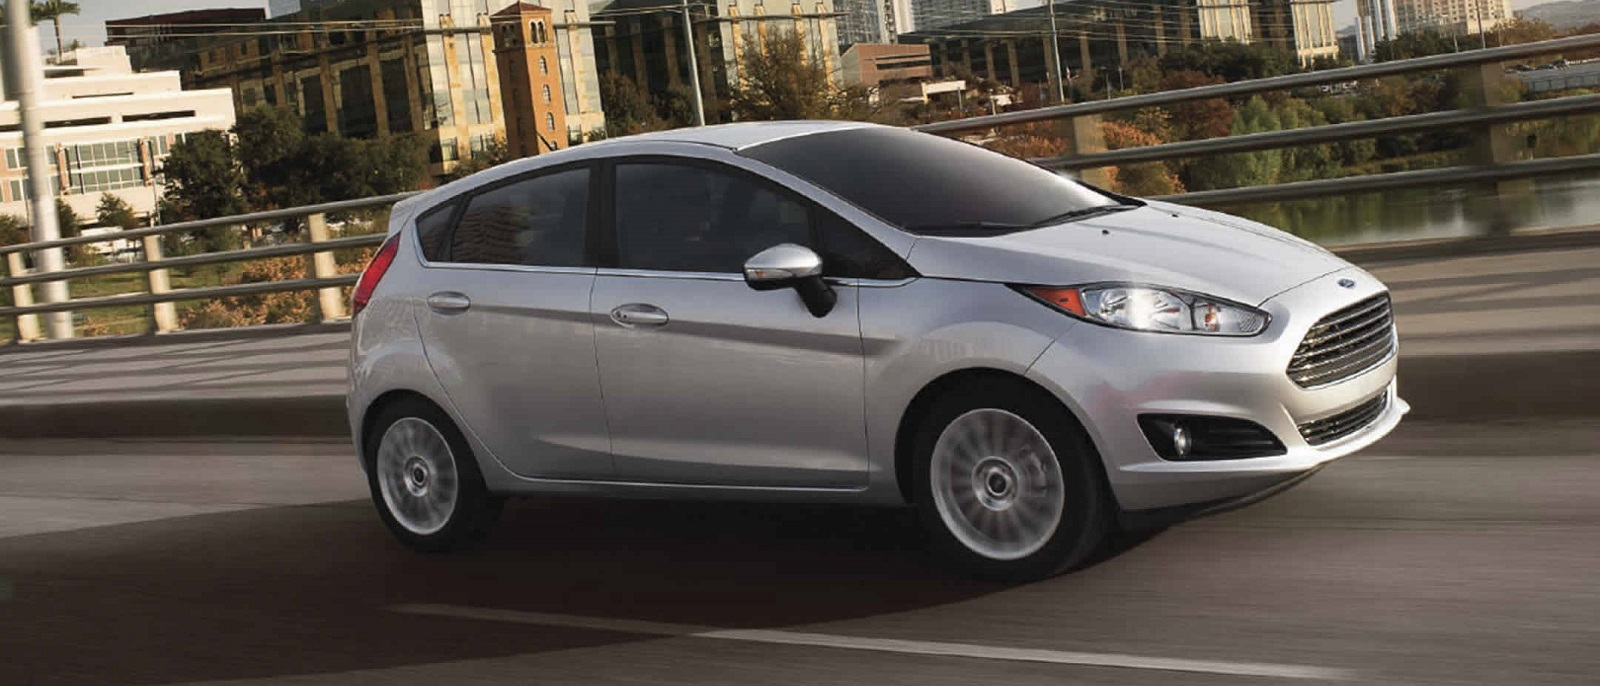 2017-ford-fiesta-hatchback-silver-profile